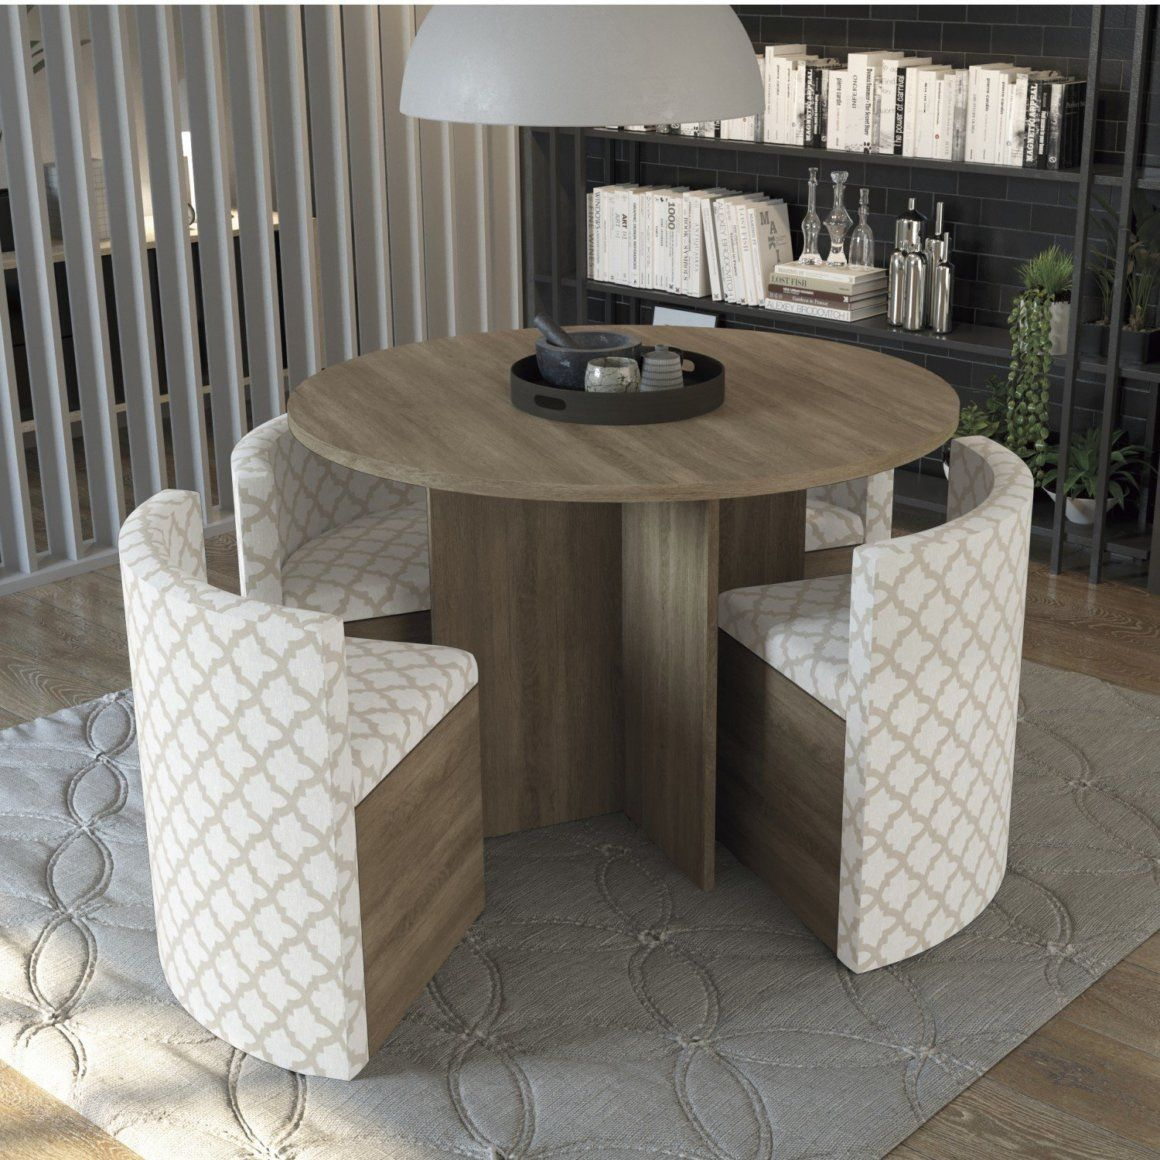 35 Super Smart Space Saving Table Designs For Every Small Space Engineering Discoveries In 2021 Space Saving Table Table Design Table Decor Living Room [ 1160 x 1160 Pixel ]